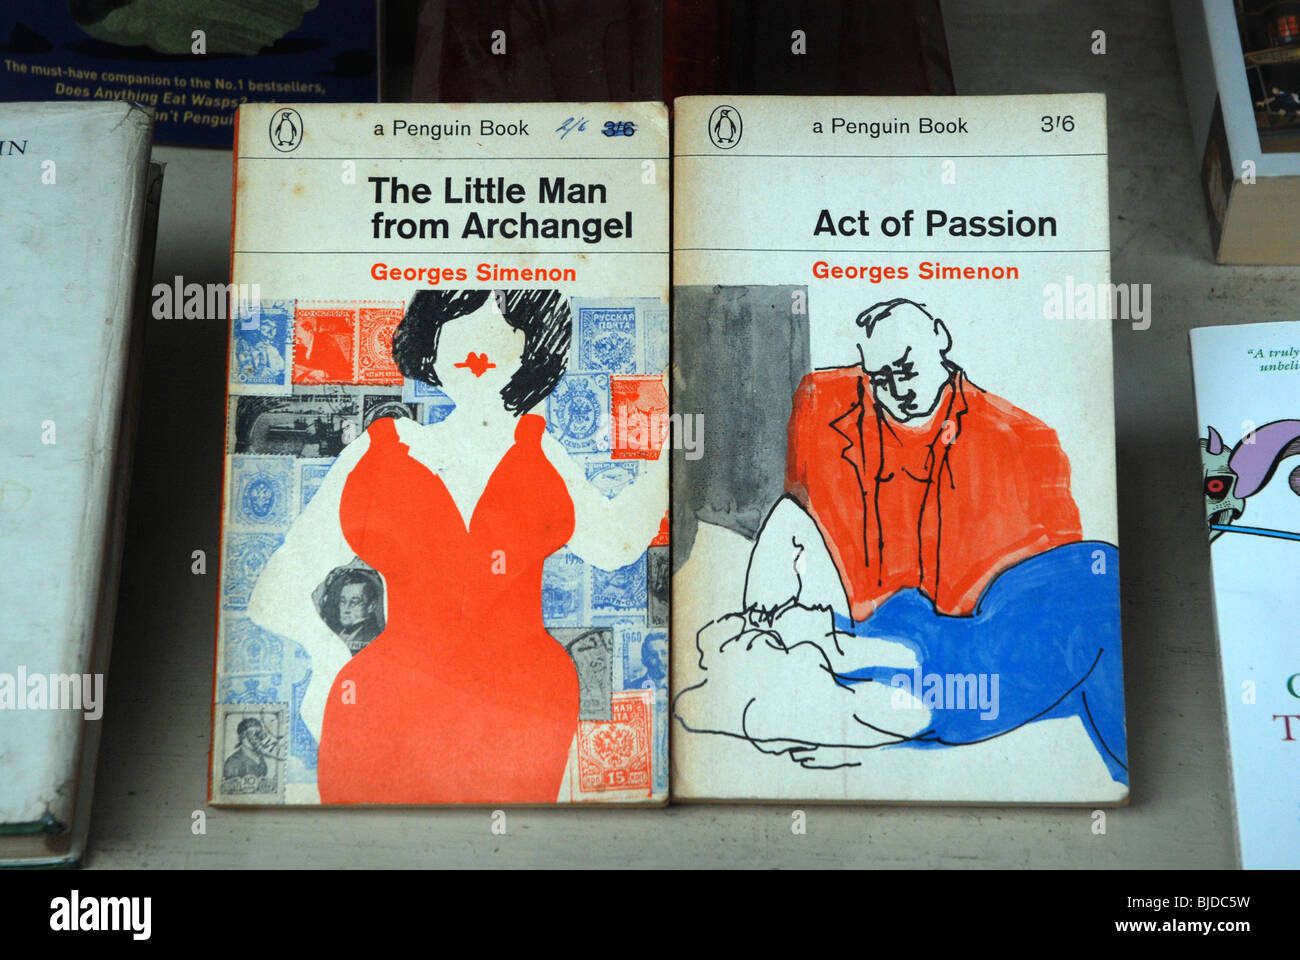 Vintage Penguin paperbacks by George Simenon in a secondhand bookshop  window. - Stock Image